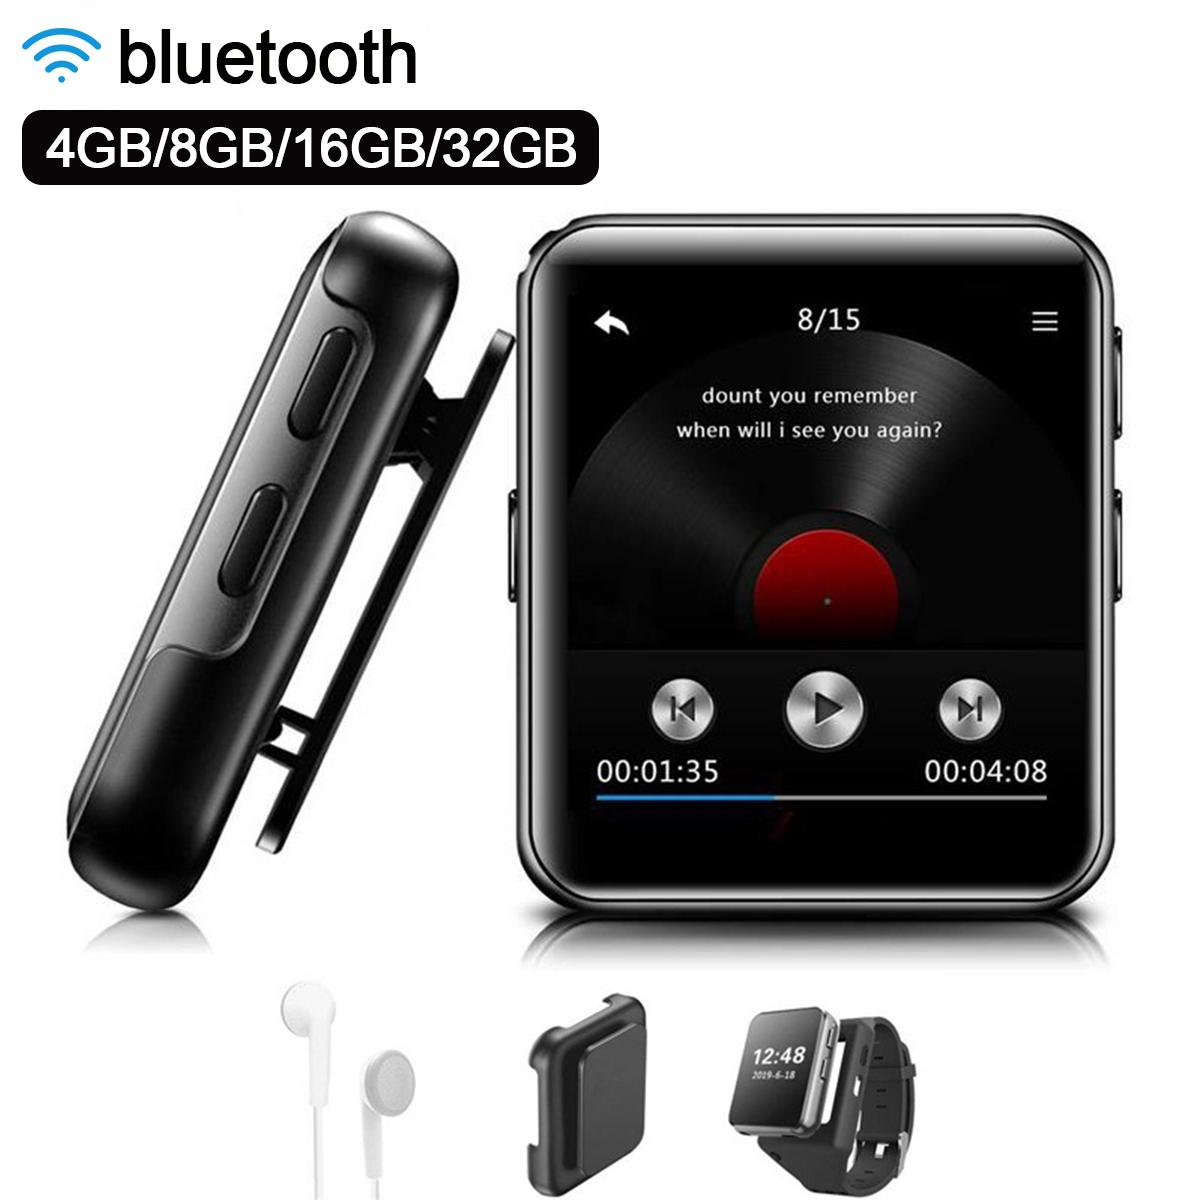 Mini Clip <font><b>MP3</b></font> <font><b>Player</b></font> bluetooth mit 1,54 Zoll Touch Screen Tragbare <font><b>MP3</b></font> Musik <font><b>Player</b></font> HiFi <font><b>Metall</b></font> Audio-<font><b>Player</b></font> mit FM für Lauf image